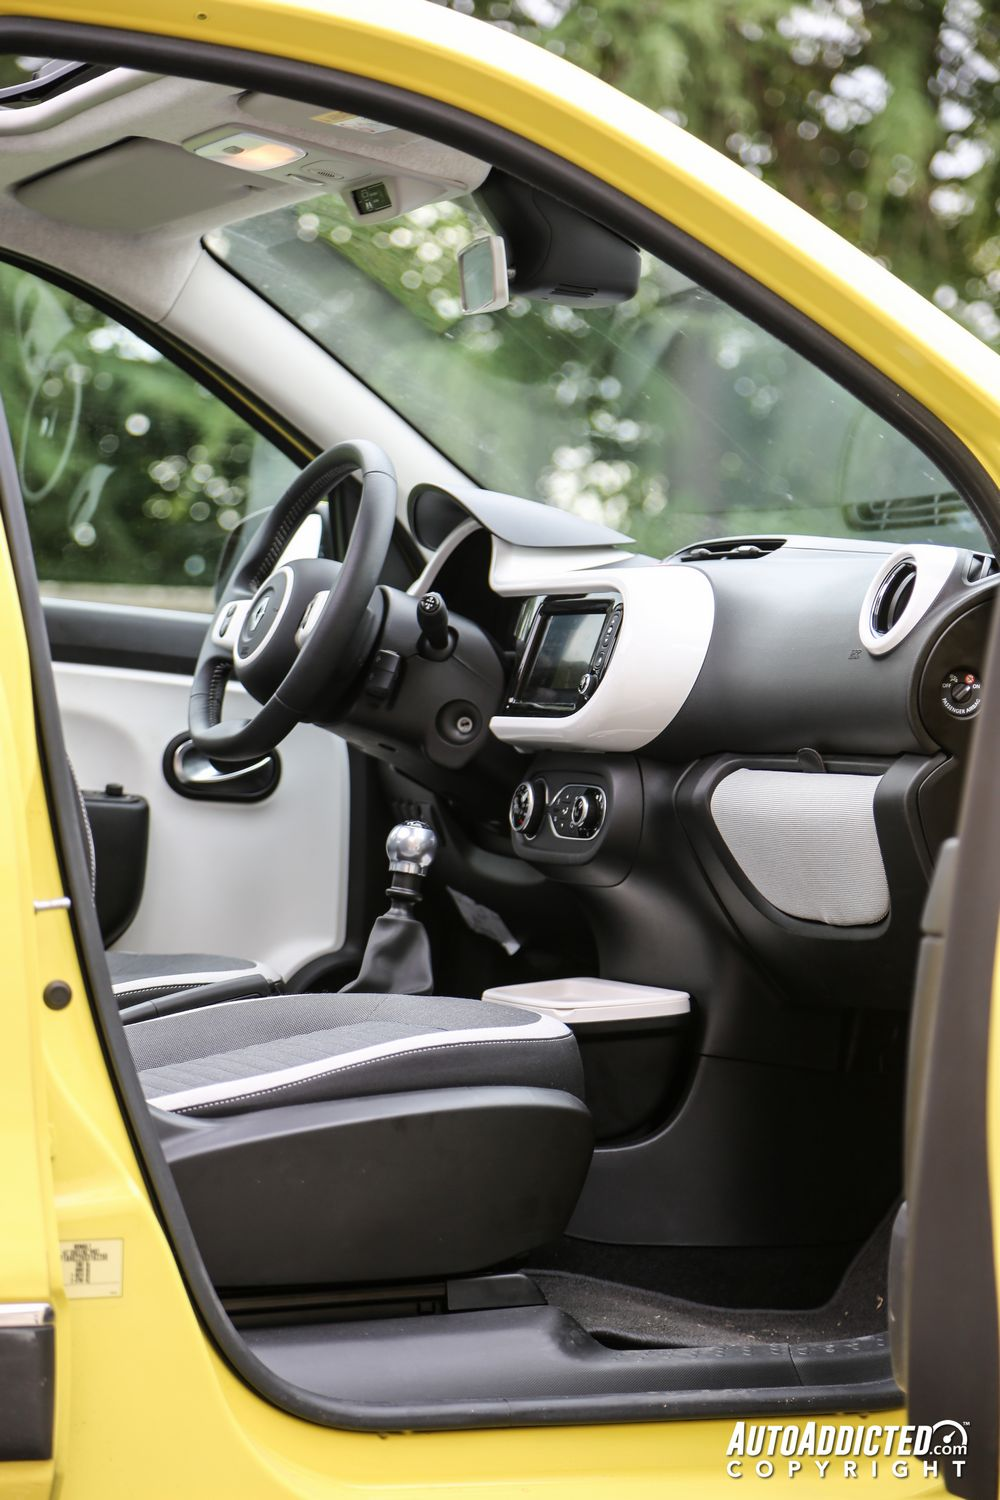 "Renault Twingo Tce Open Air: test drive della city-car ""diversa"""